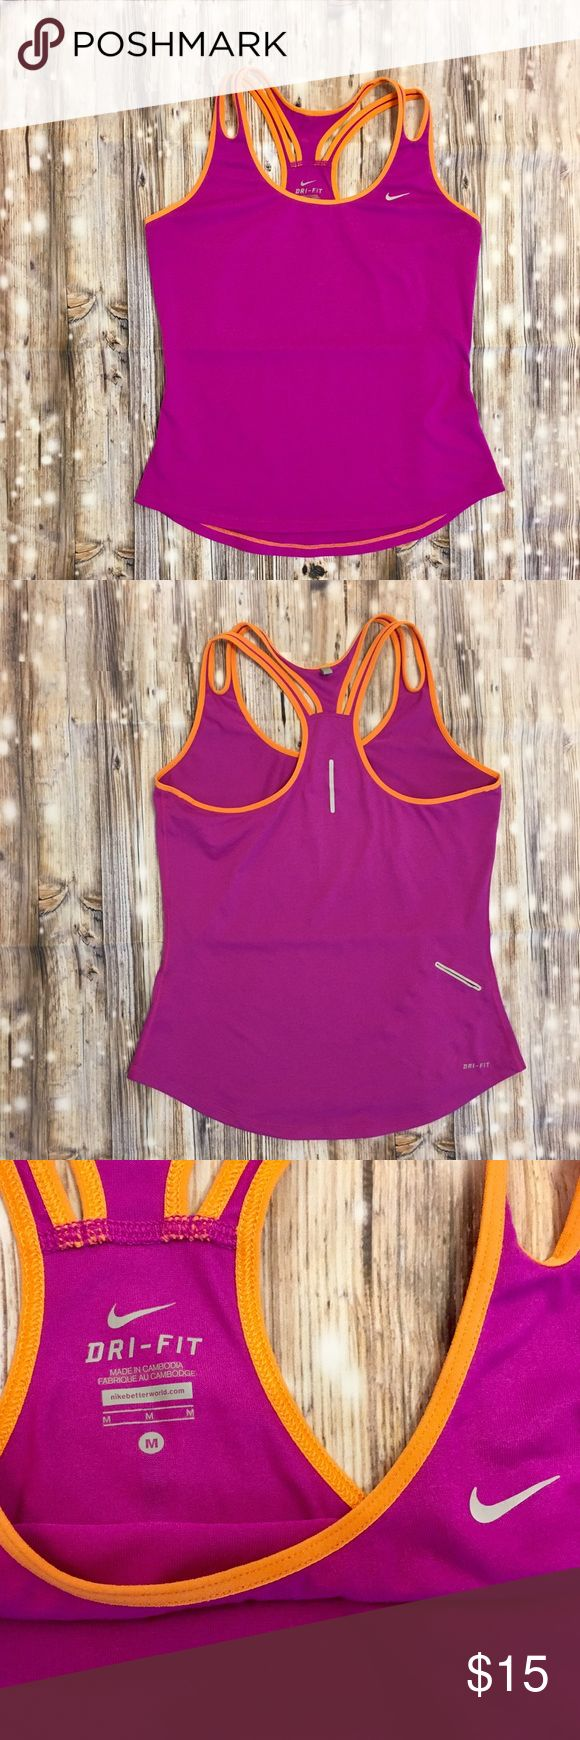 Nike dri-fit bright purple & orange tank top Dri-fit bright purple and orange racerback tank top, super soft cute and comfy, tiny hole on the back top hem but isn't noticeable at all, small pocket on right lower back, double straps on both sides, would go perfect with the bright purple Nike athletic shorts I have posted! Nike Tops Tank Tops